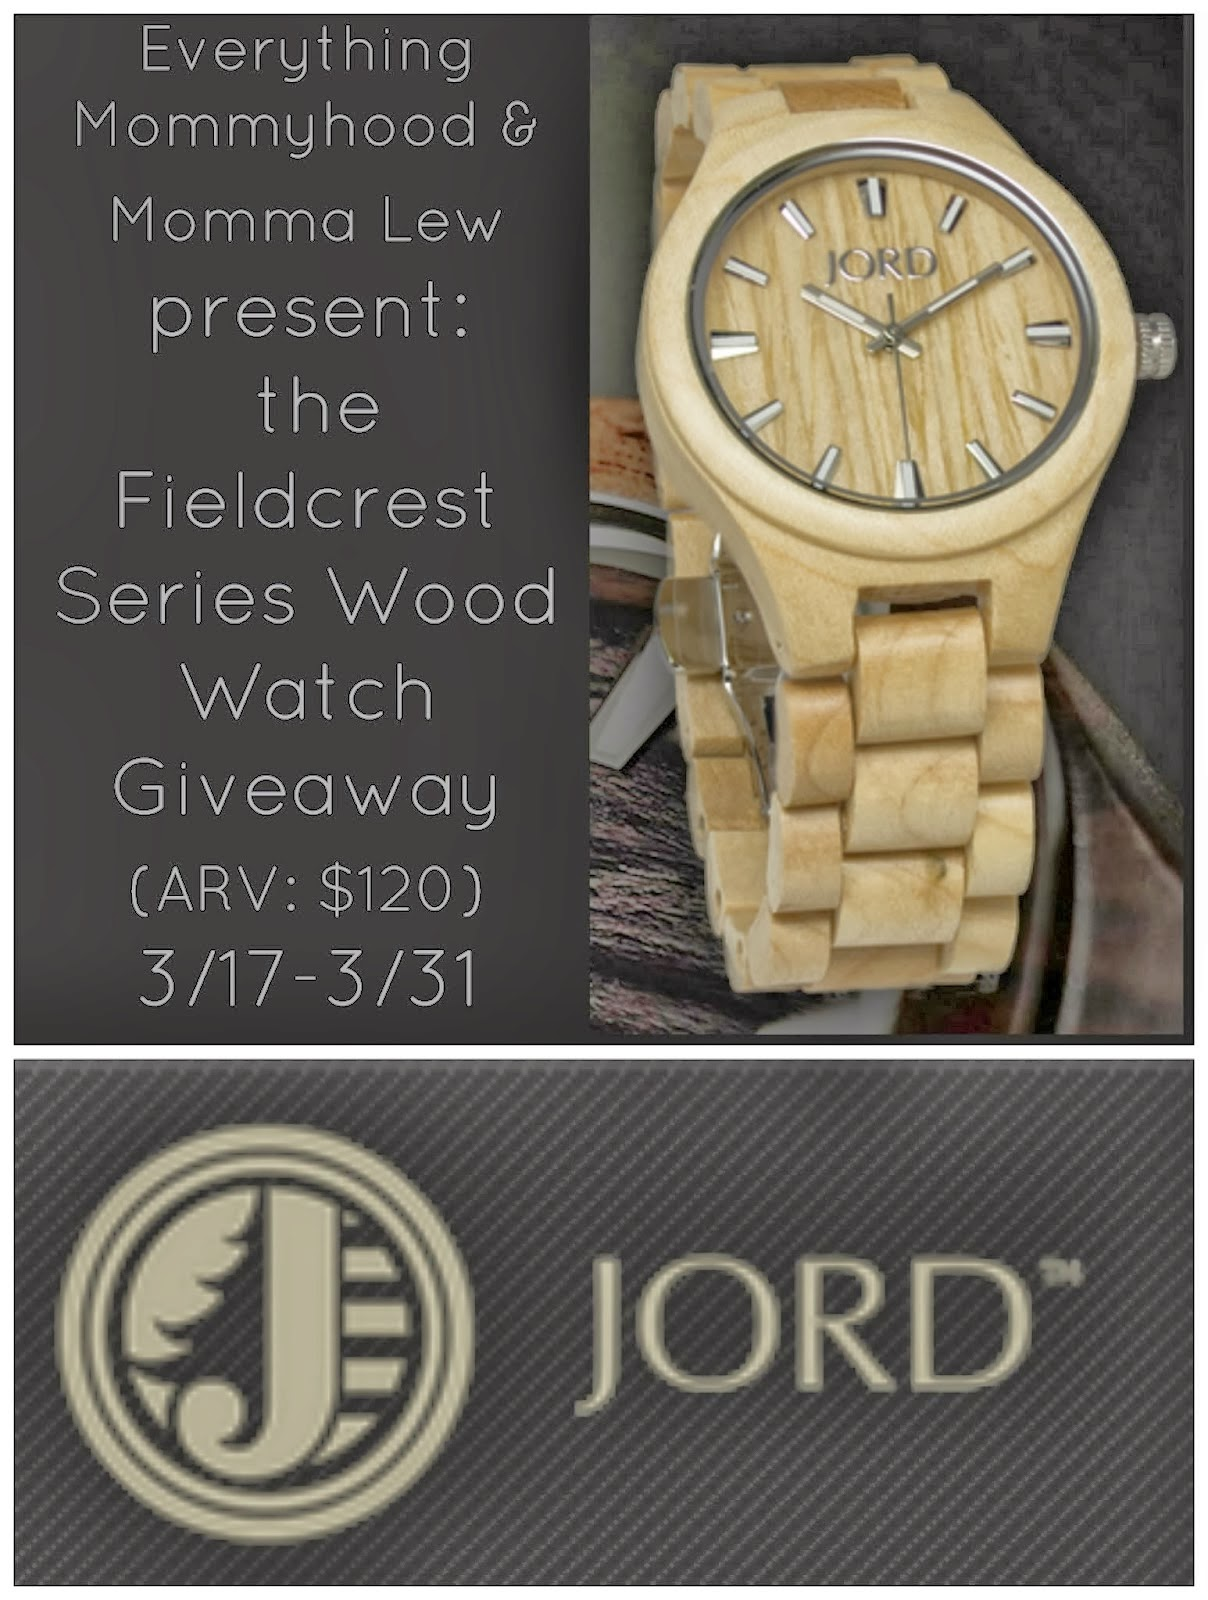 Enter the JORD Wood Watch Giveaway. Ends 3/31.